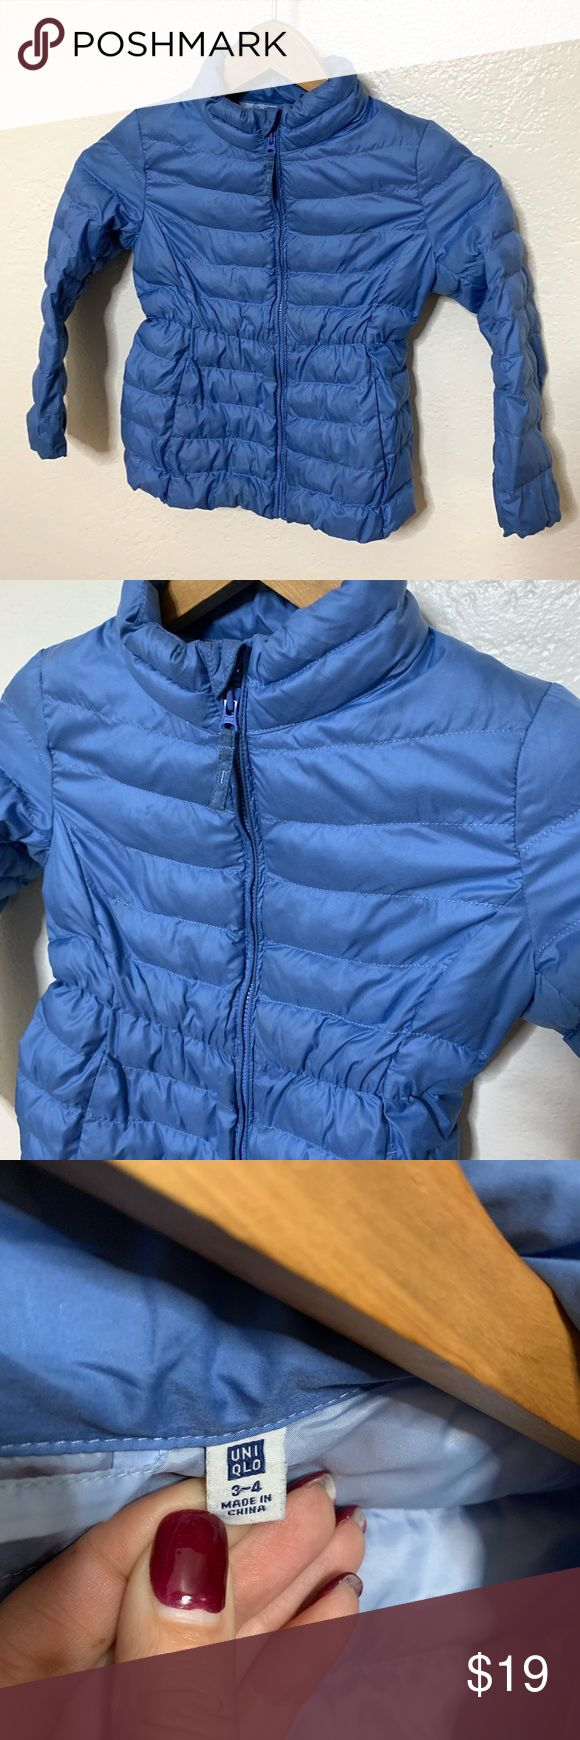 SOLD Uniqlo Puffer Jacket in 2020 Uniqlo jackets